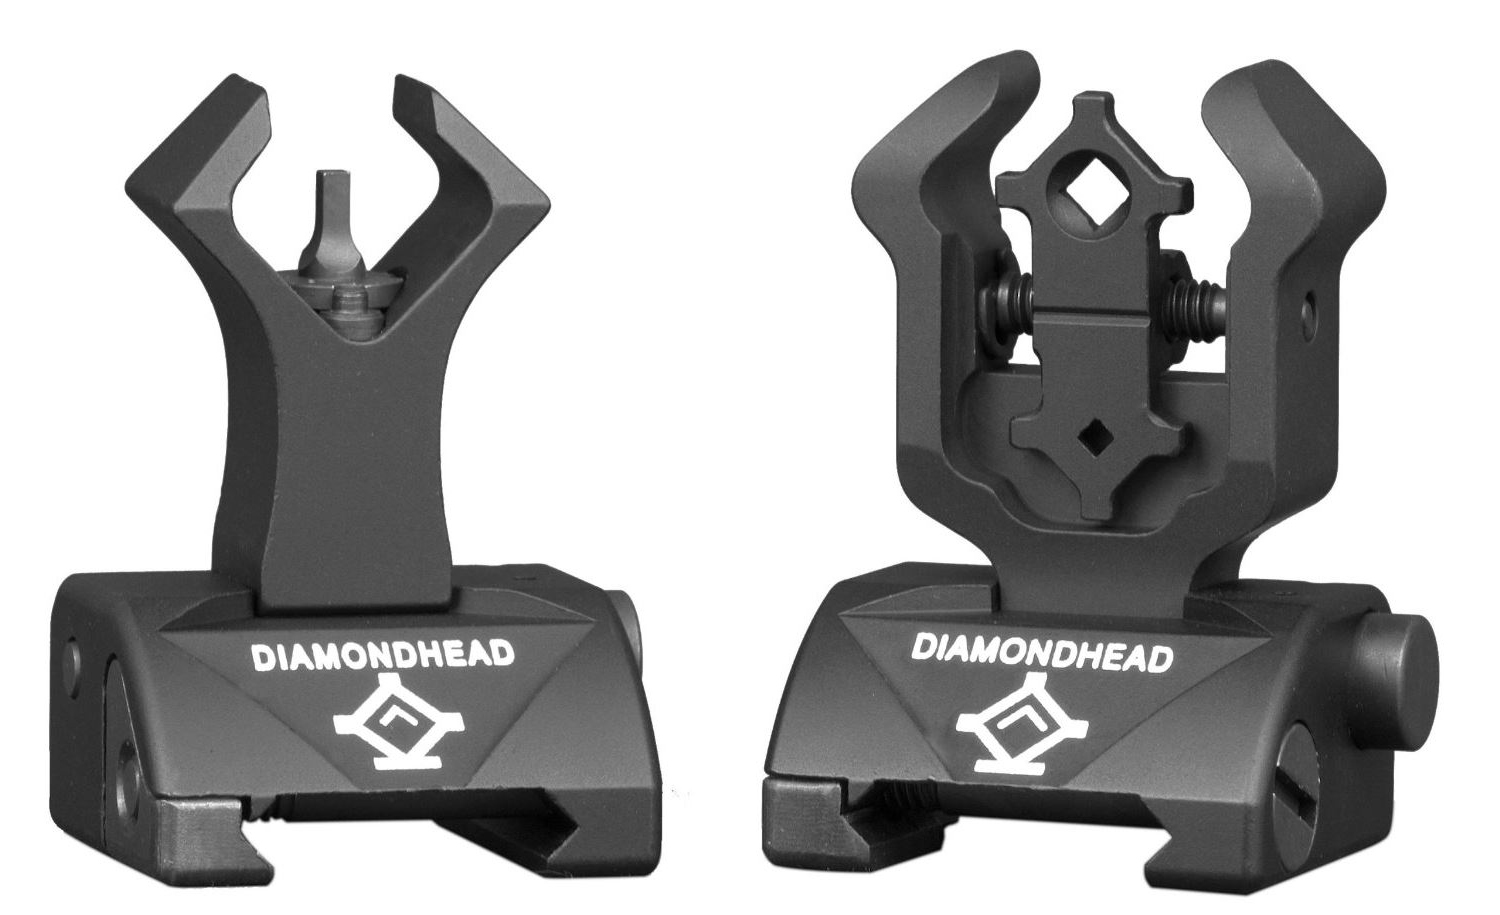 Diamondhead USA MICRO D Front Rear Iron Sights I S S for POF 308 and Raised Rail Systems Only